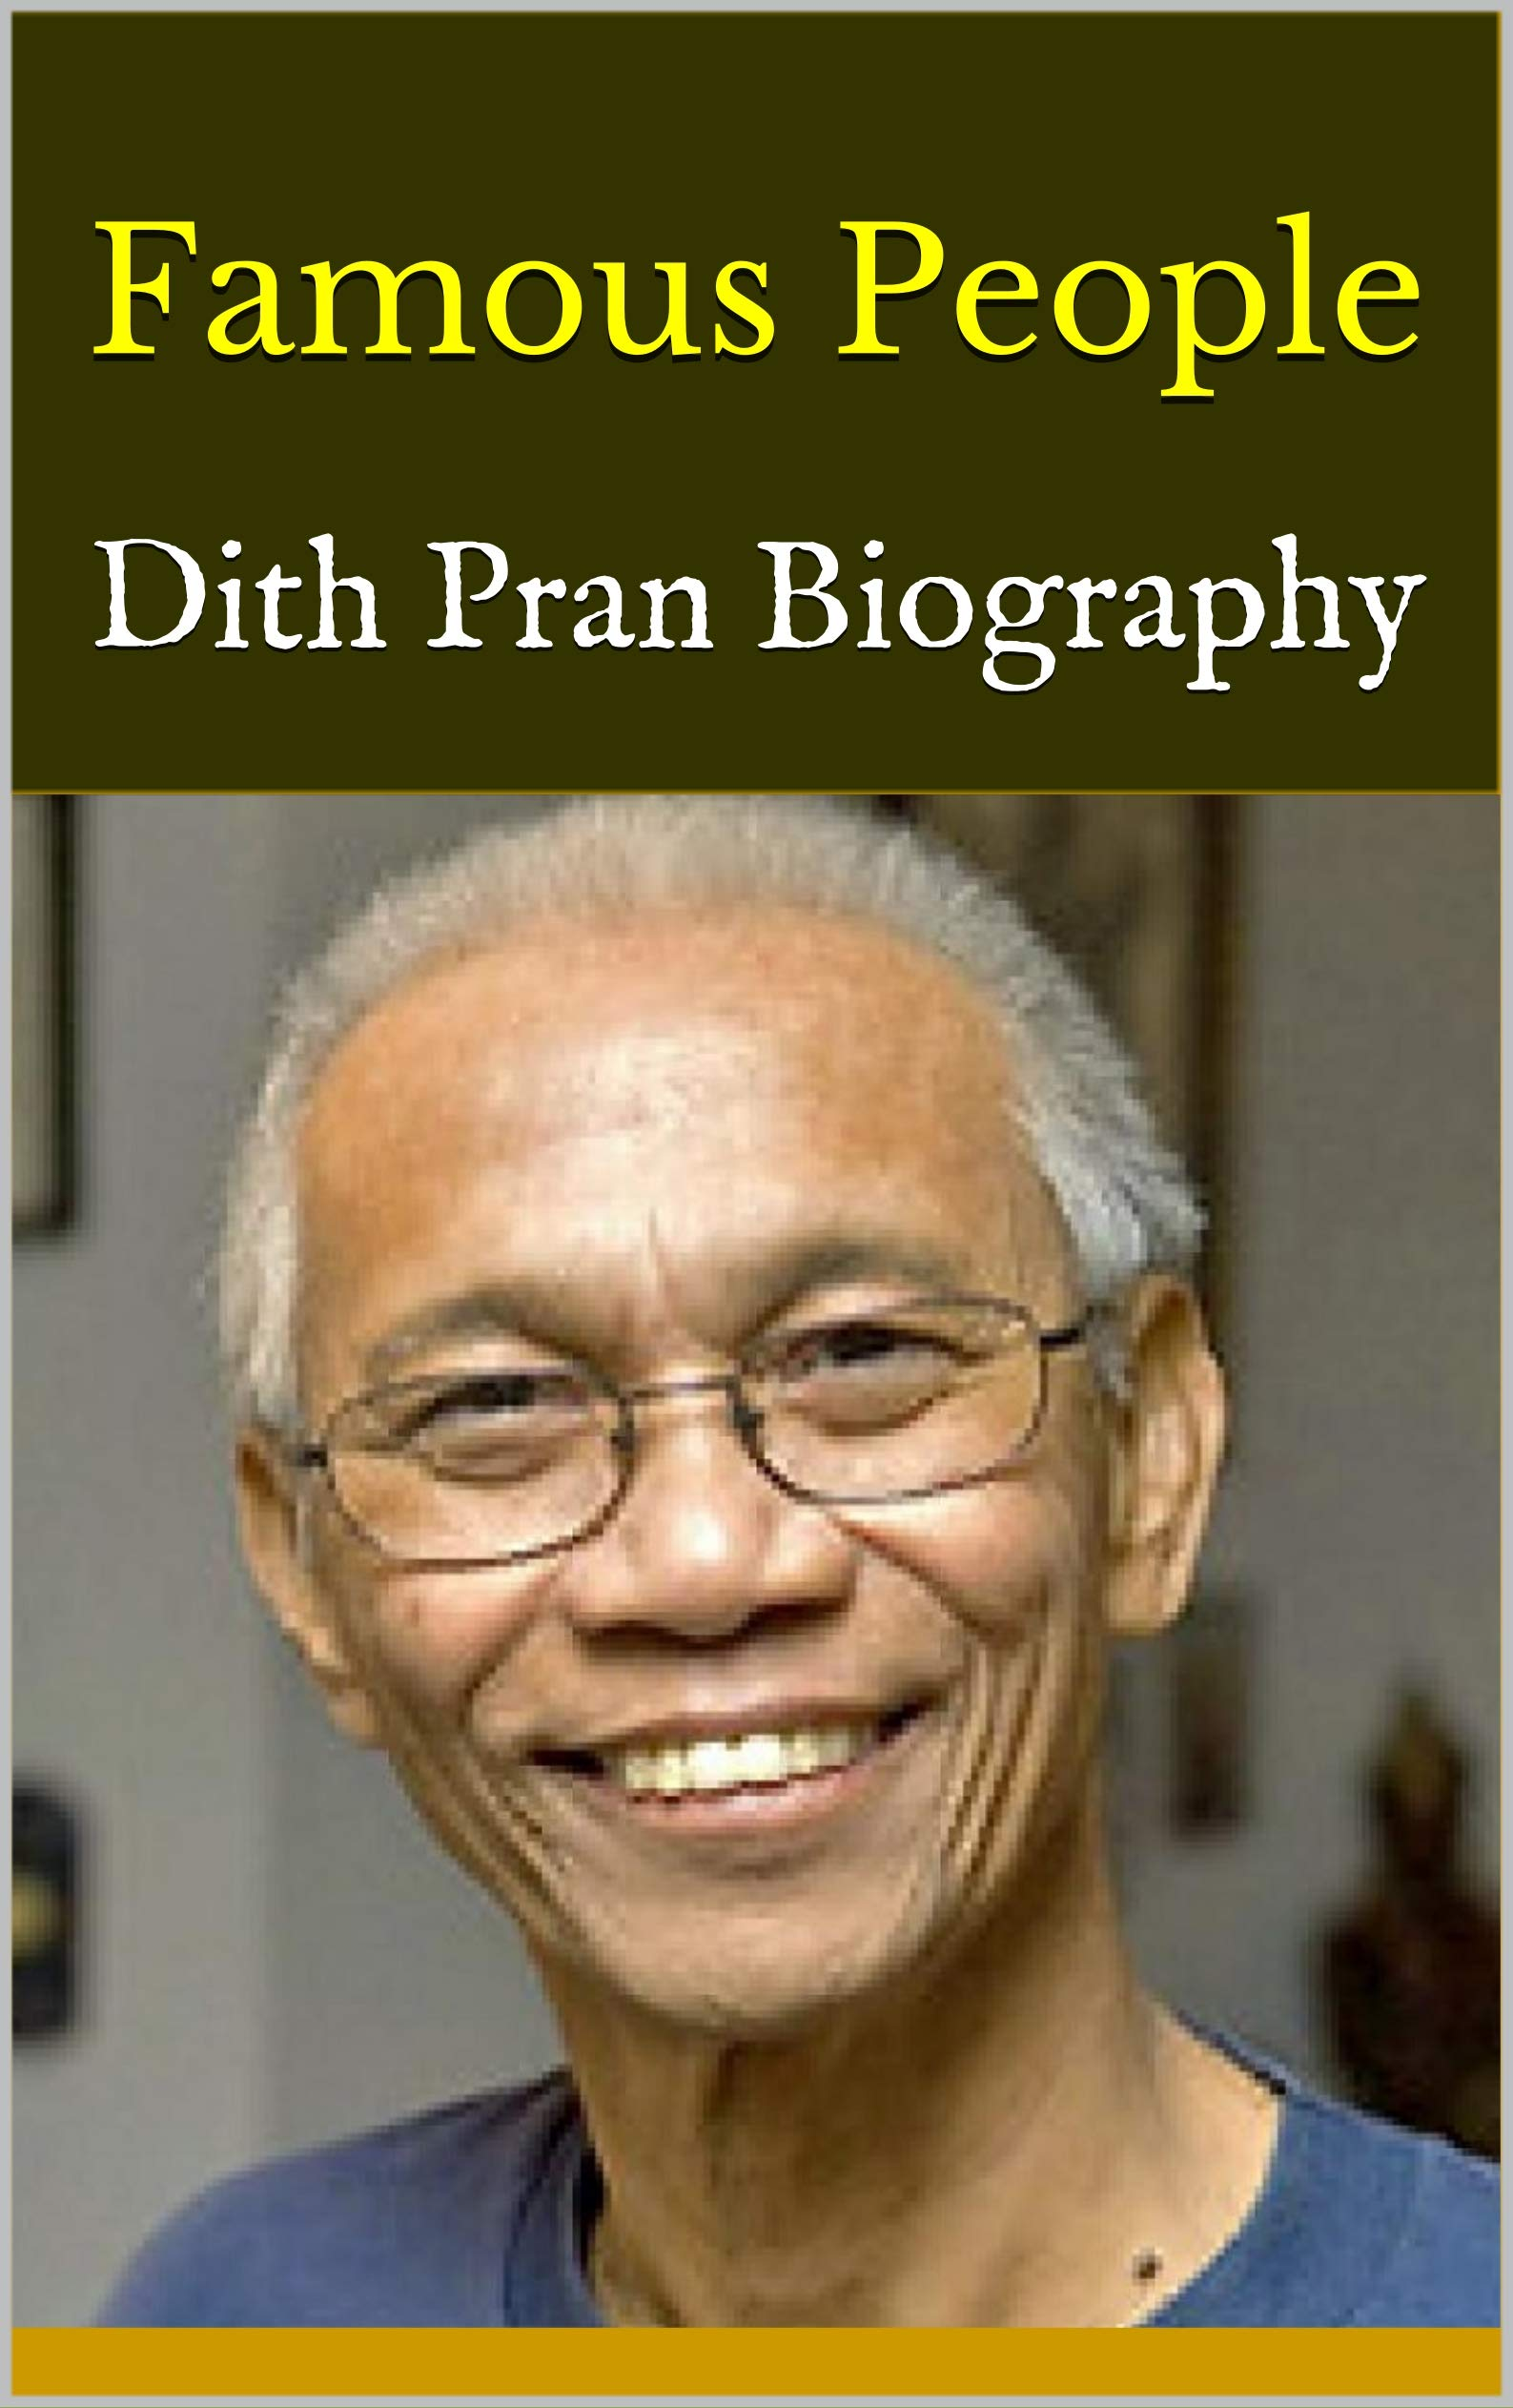 Famous People: Dith Pran Biography